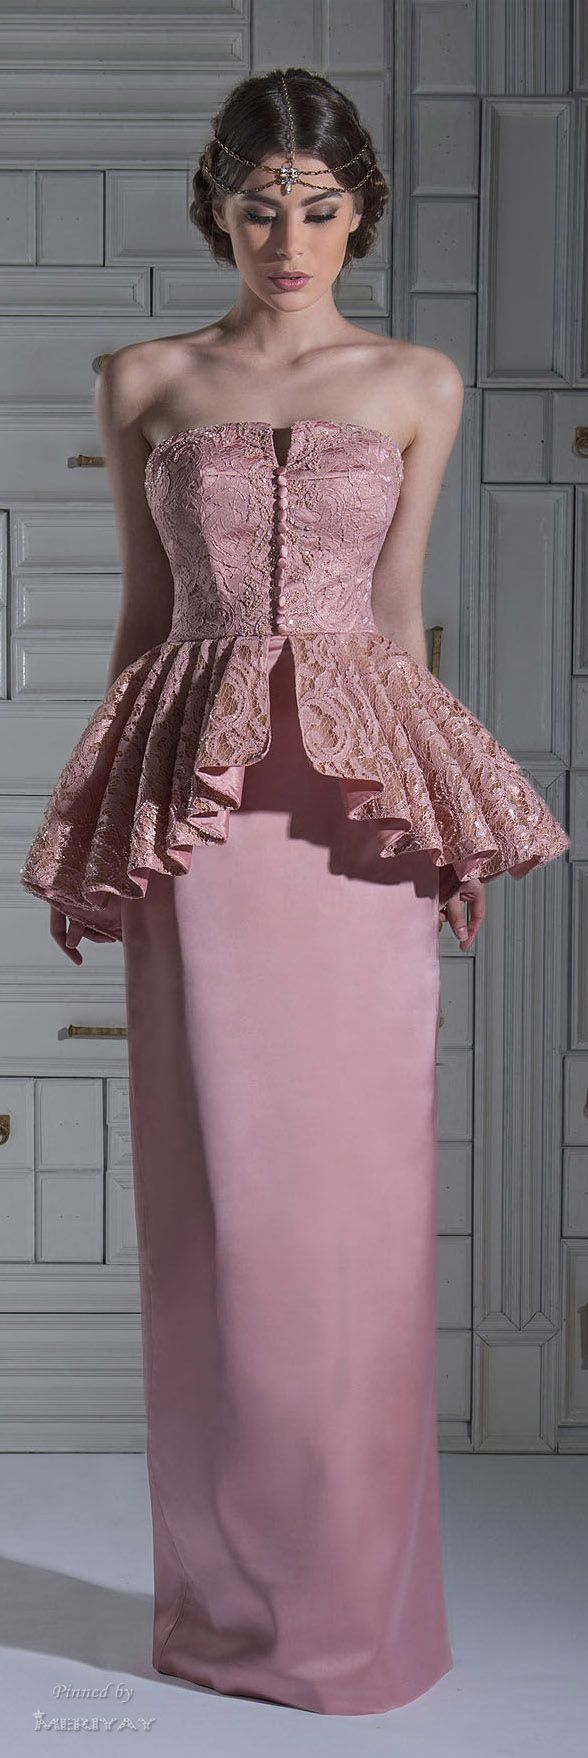 2015 Peplum Evening Gowns Pink Strapless Floor Length Sheath Prom Dresses Lace, Special Occassion Dress